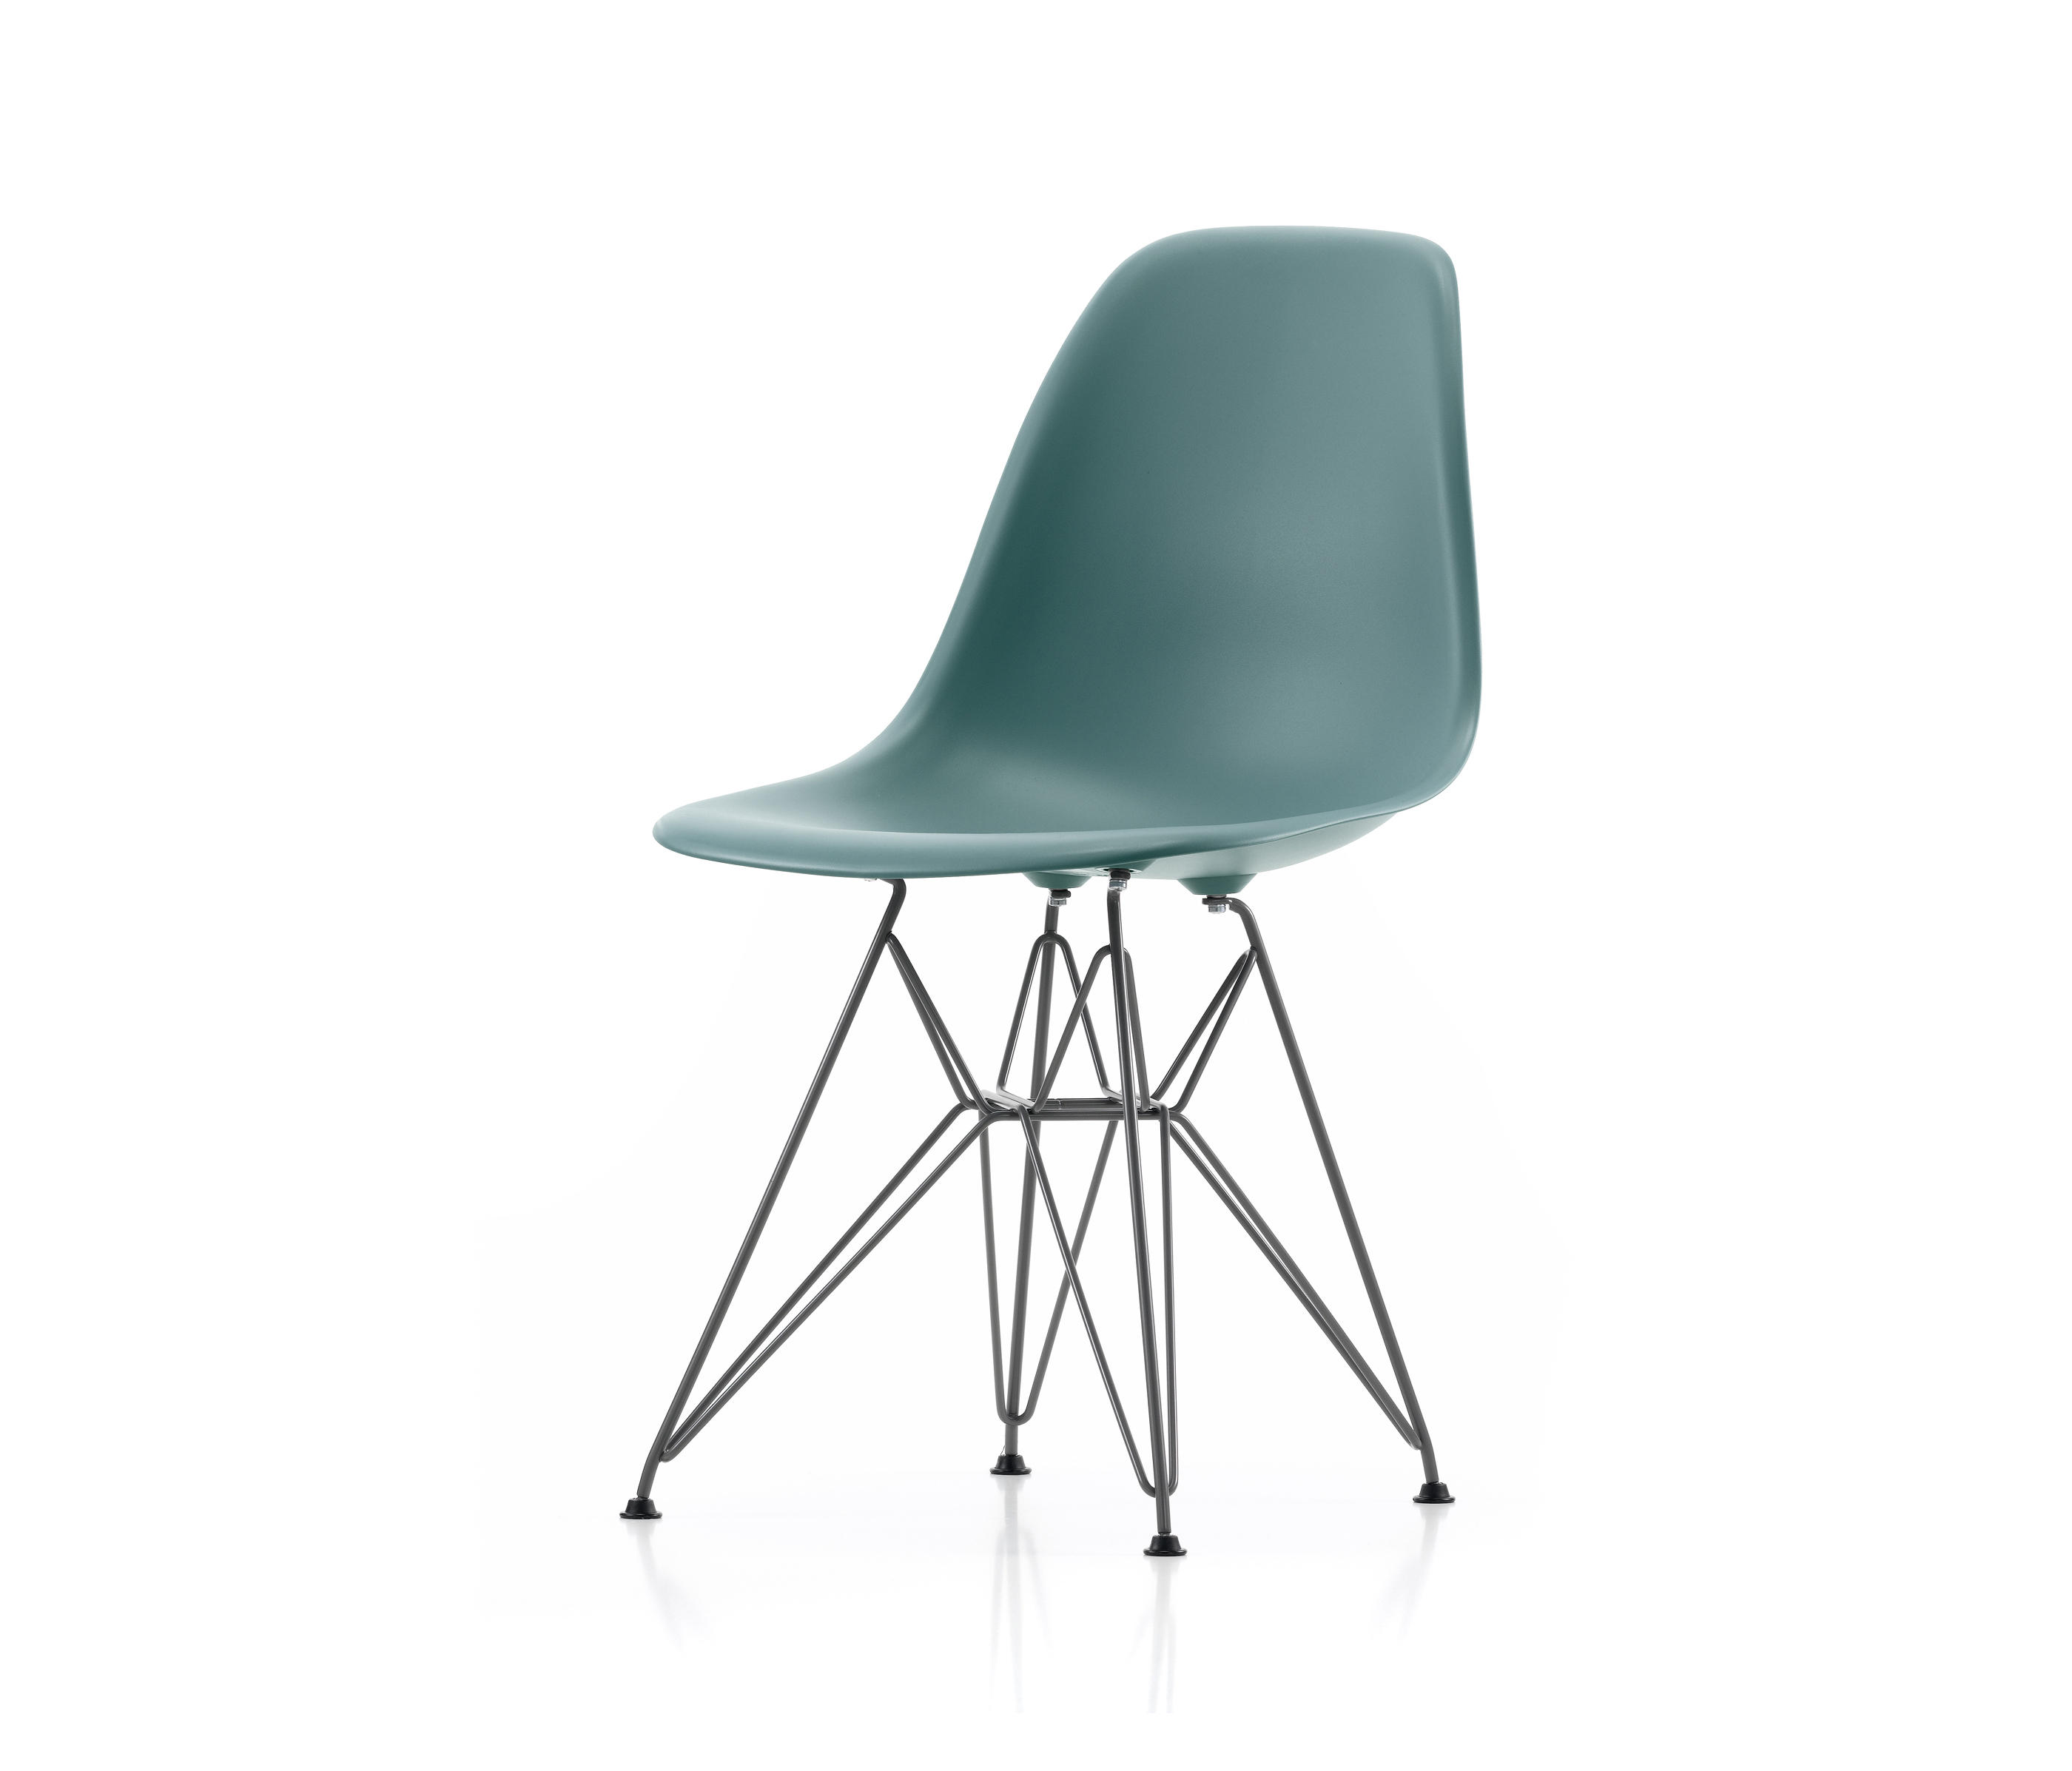 Eames Sessel Vitra Eames Plastic Side Chair Dsr Stühle Von Vitra Architonic